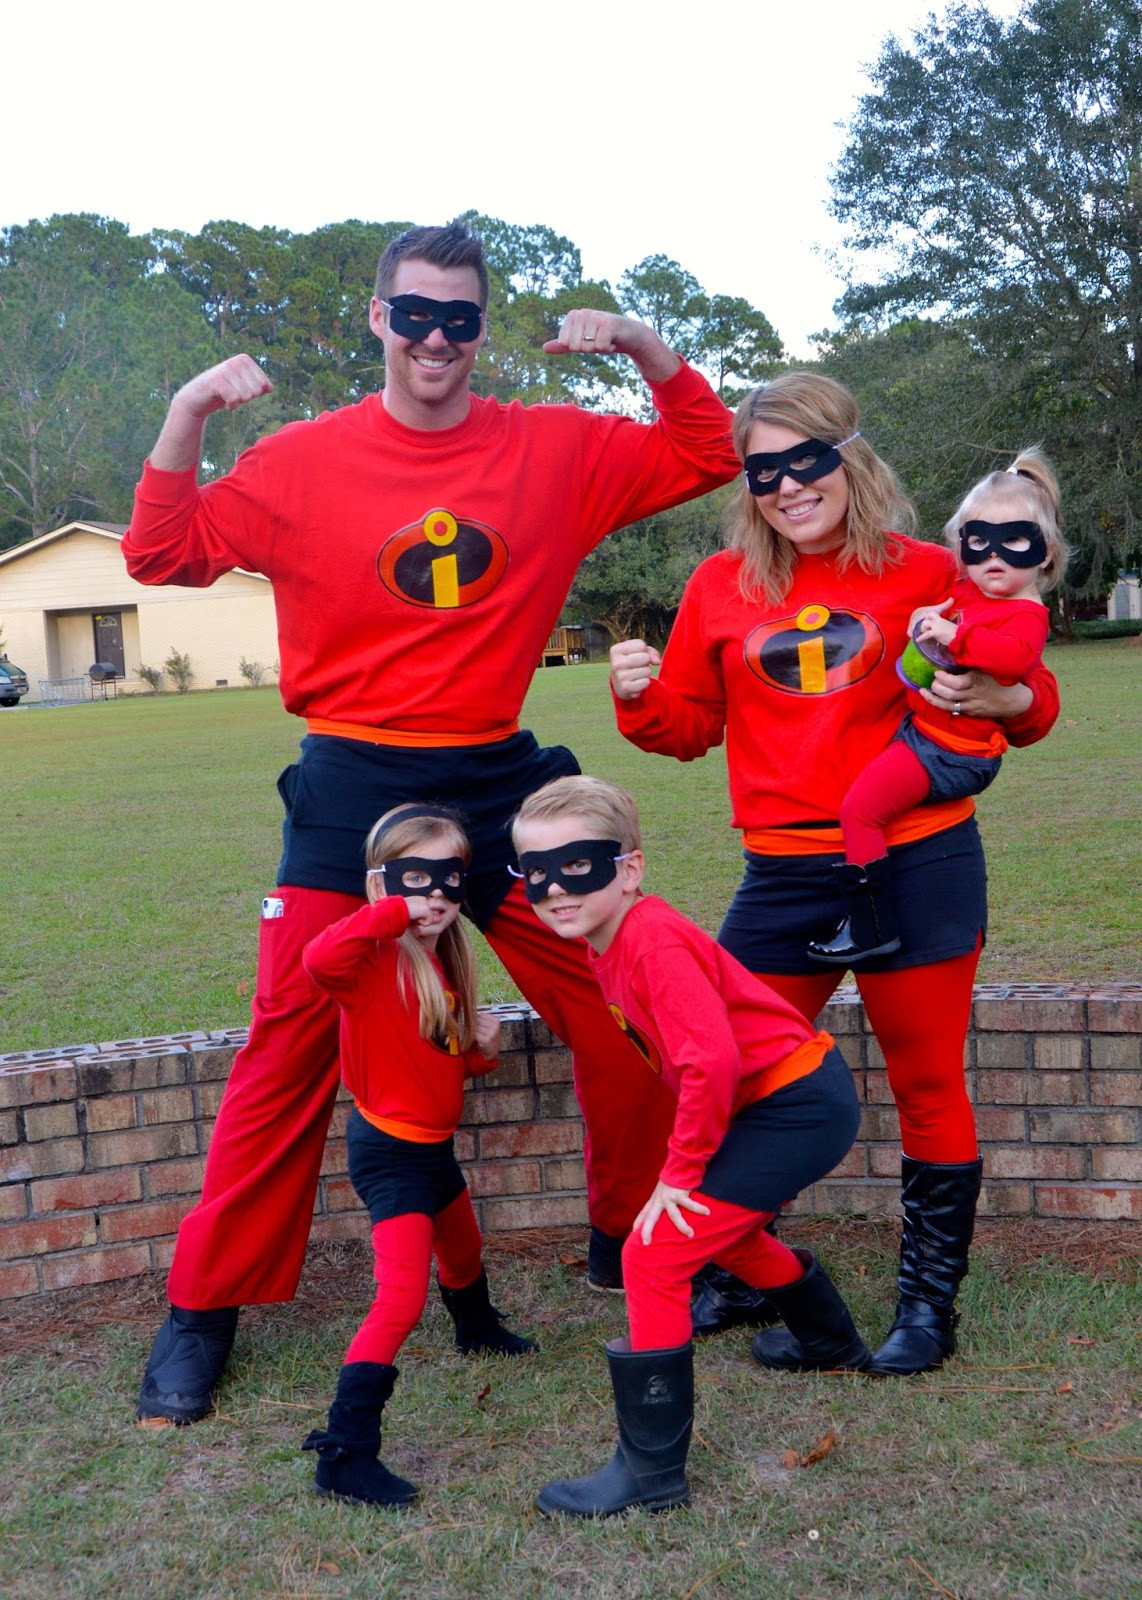 Best ideas about Incredibles DIY Costumes . Save or Pin The Journey of Parenthood Incredibles Halloween Now.